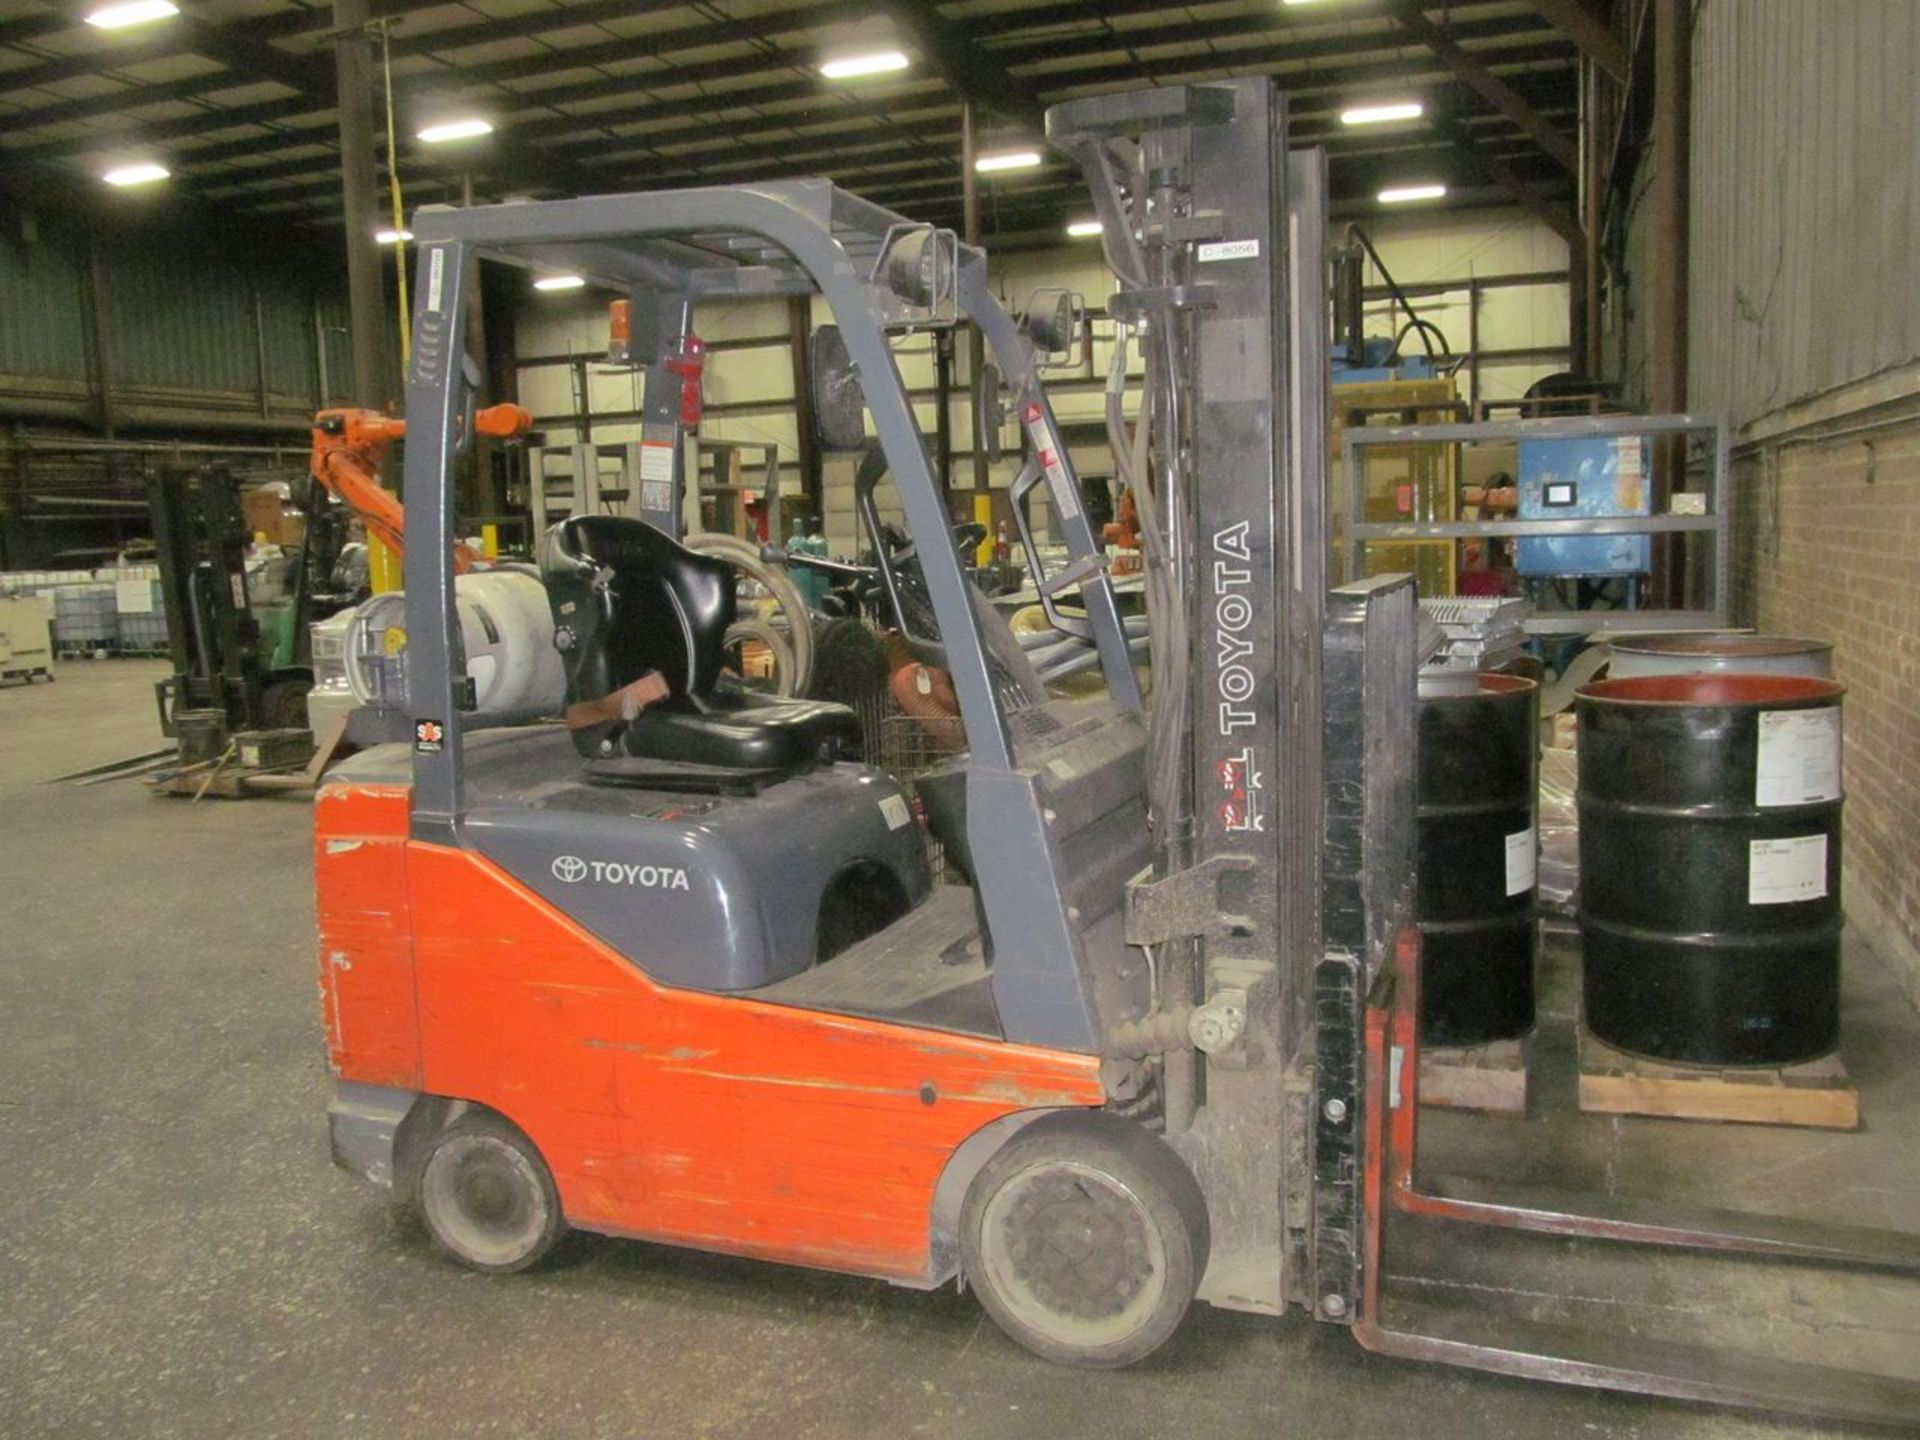 Toyota 5,000 lb. Cap. (approx.) Model 8FGCSU20 LP Fork Lift Truck, S/N: 20712; with 3-Stage Mast,